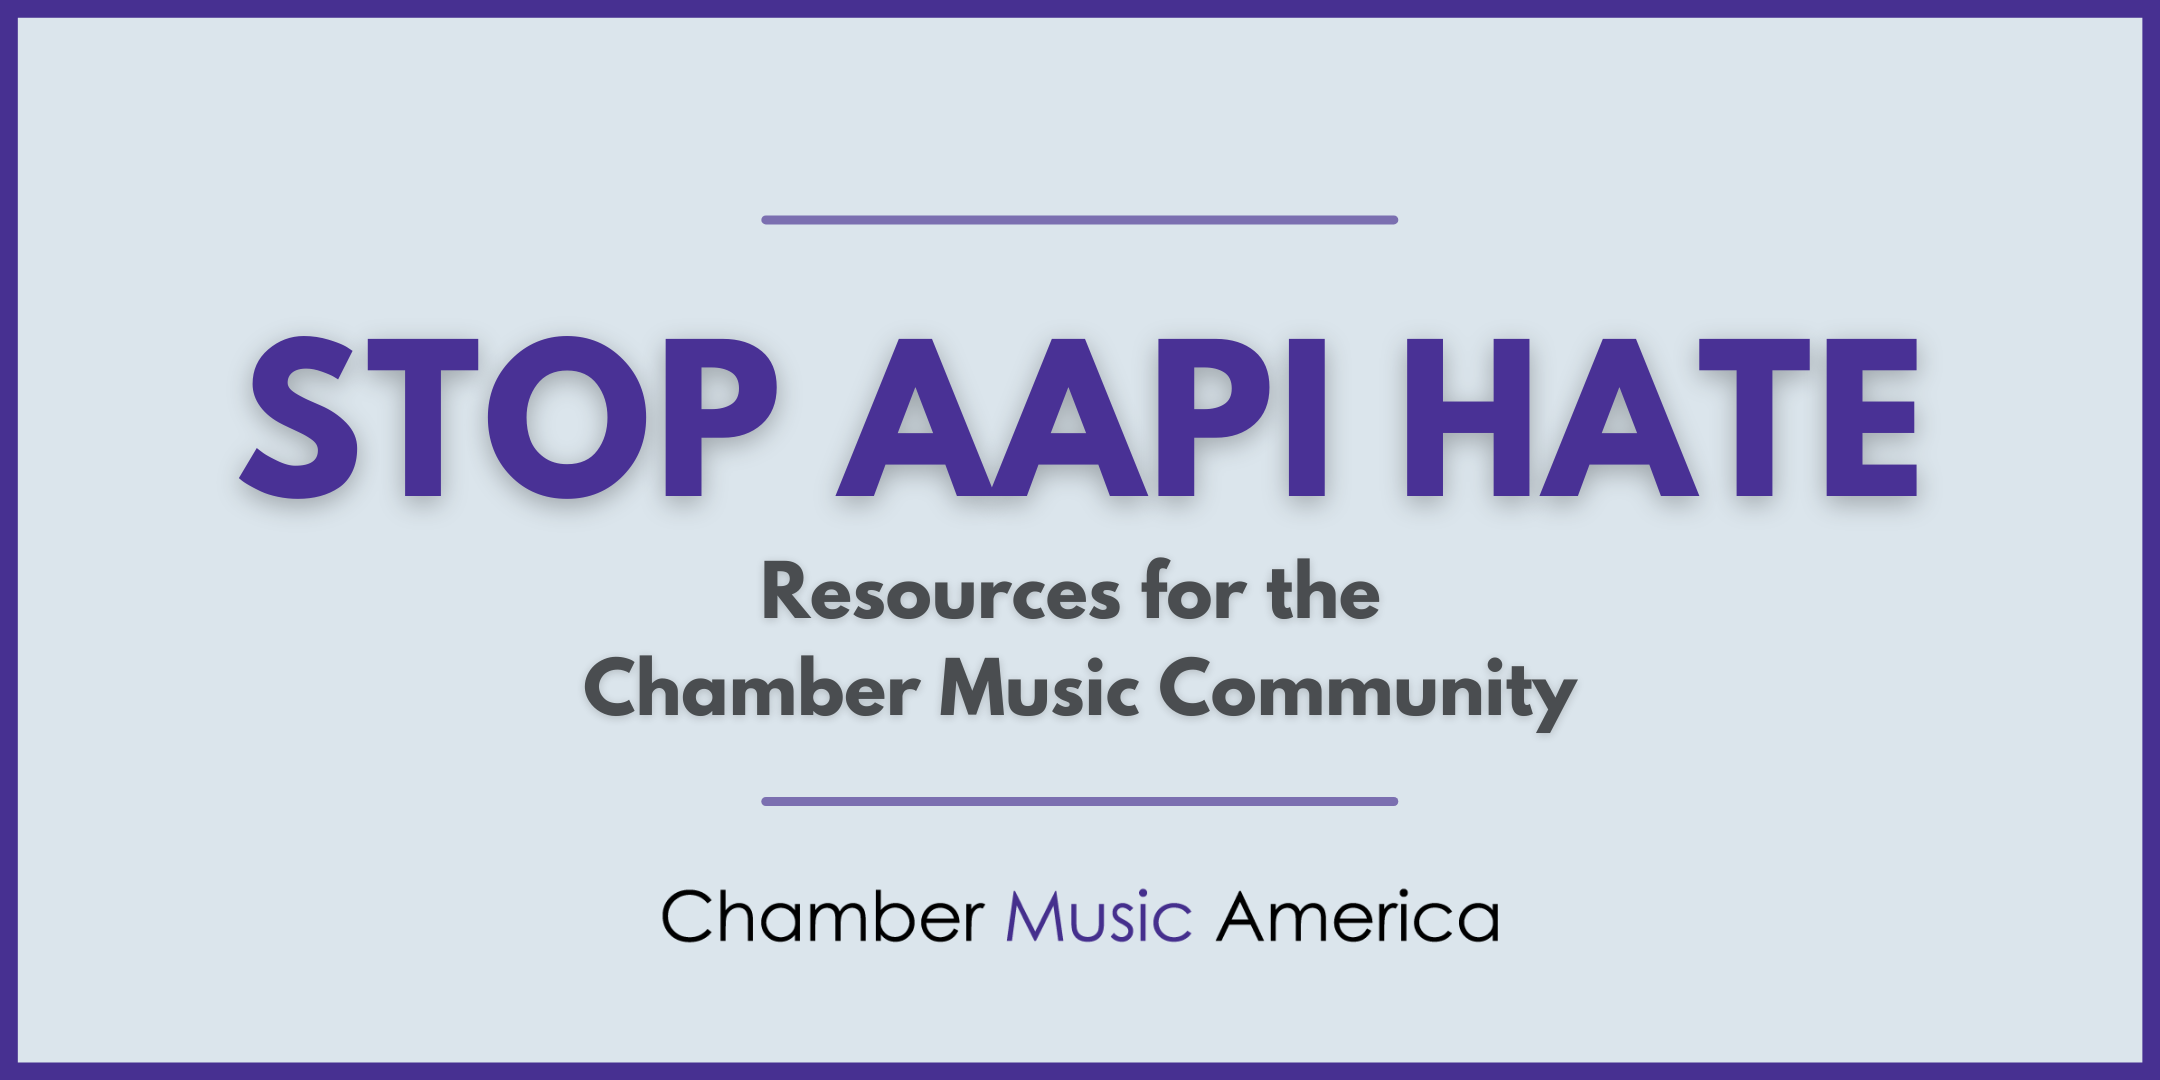 Stop AAPI Hate, Resources for the Chamber Music Community